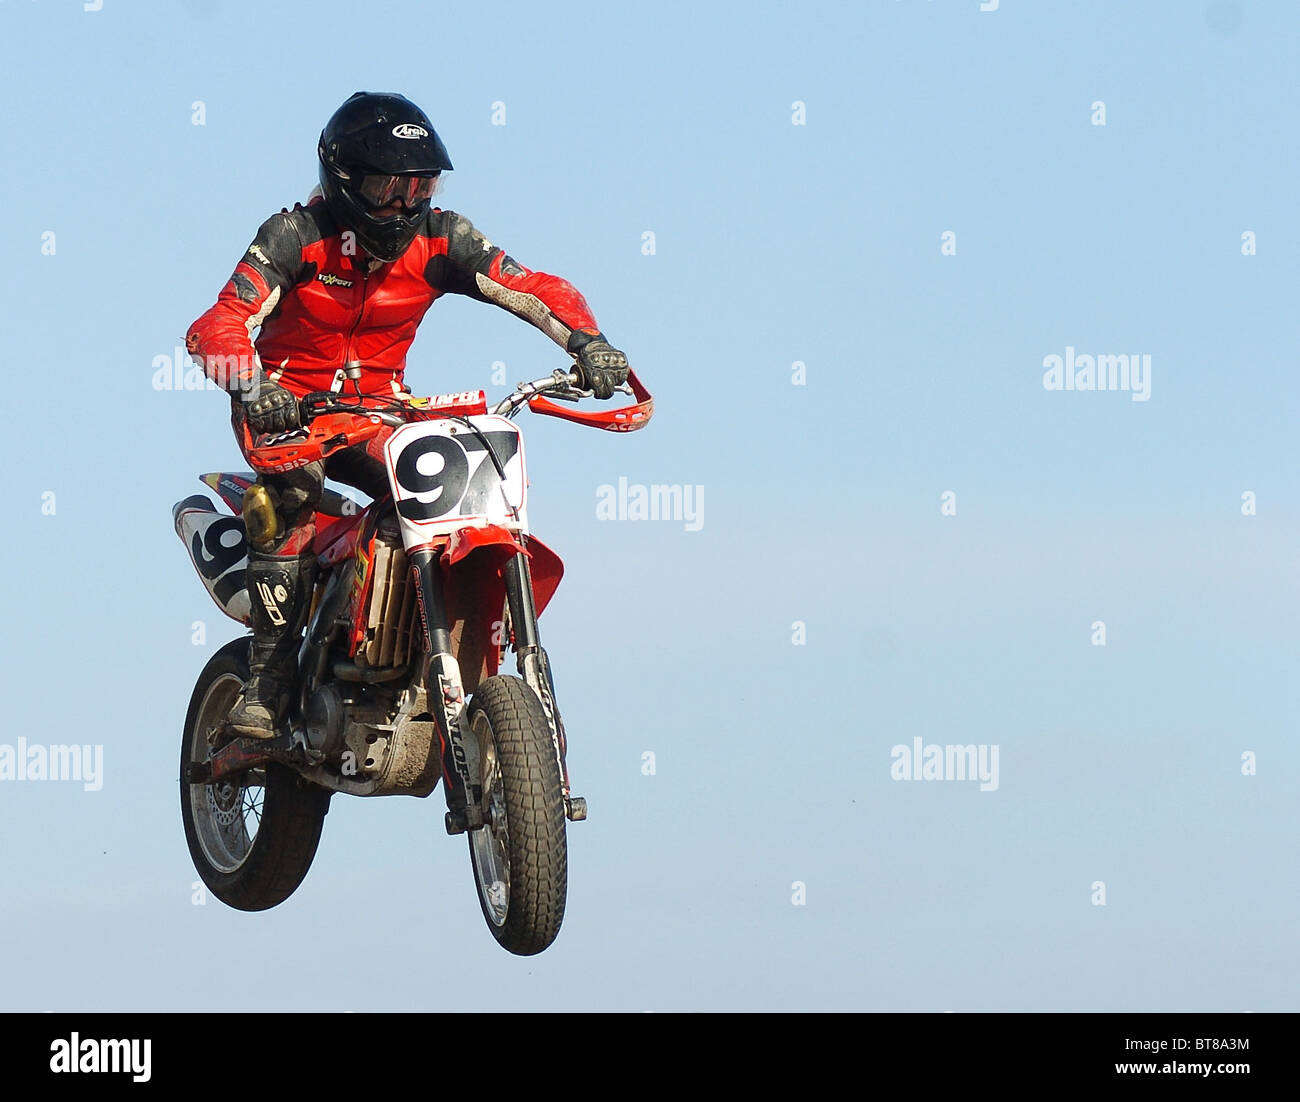 THE SUPERCROSS BRITISH CHAMPIONSHIP AT LYDD RACEWAY - Stock Image